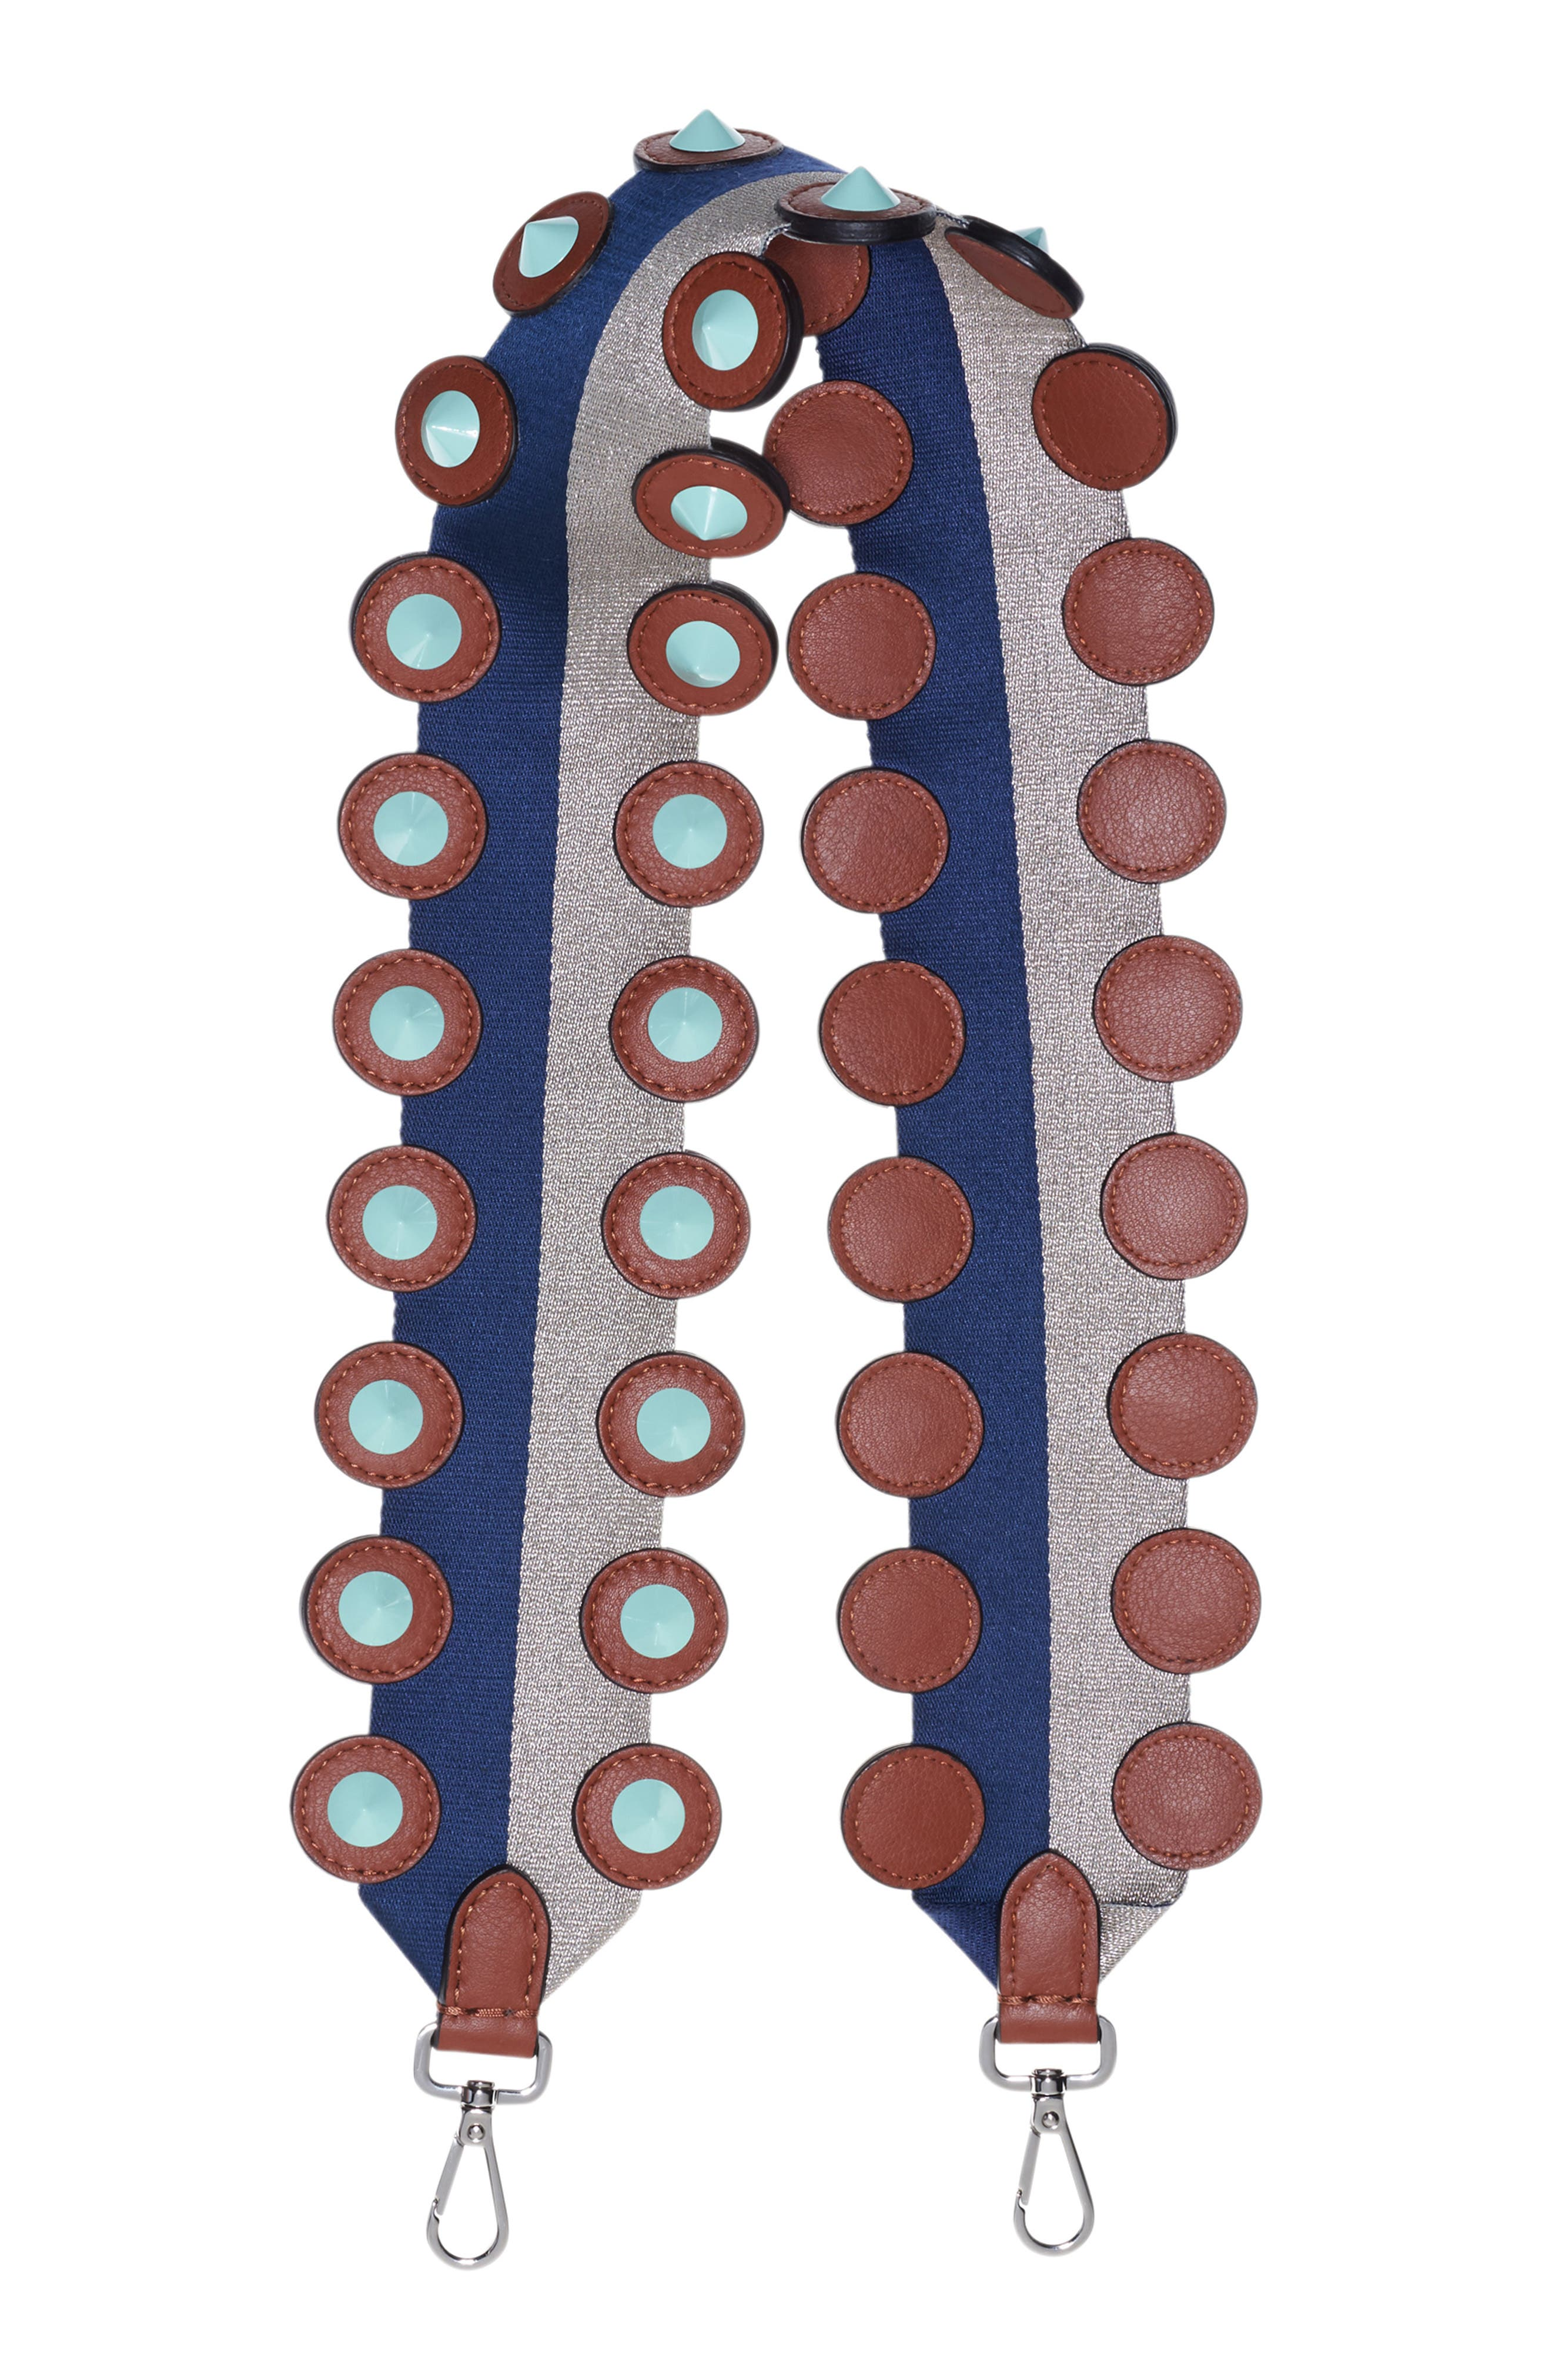 Strap You Studded Leather Guitar Bag Strap,                             Main thumbnail 1, color,                             NAVY/SILVER